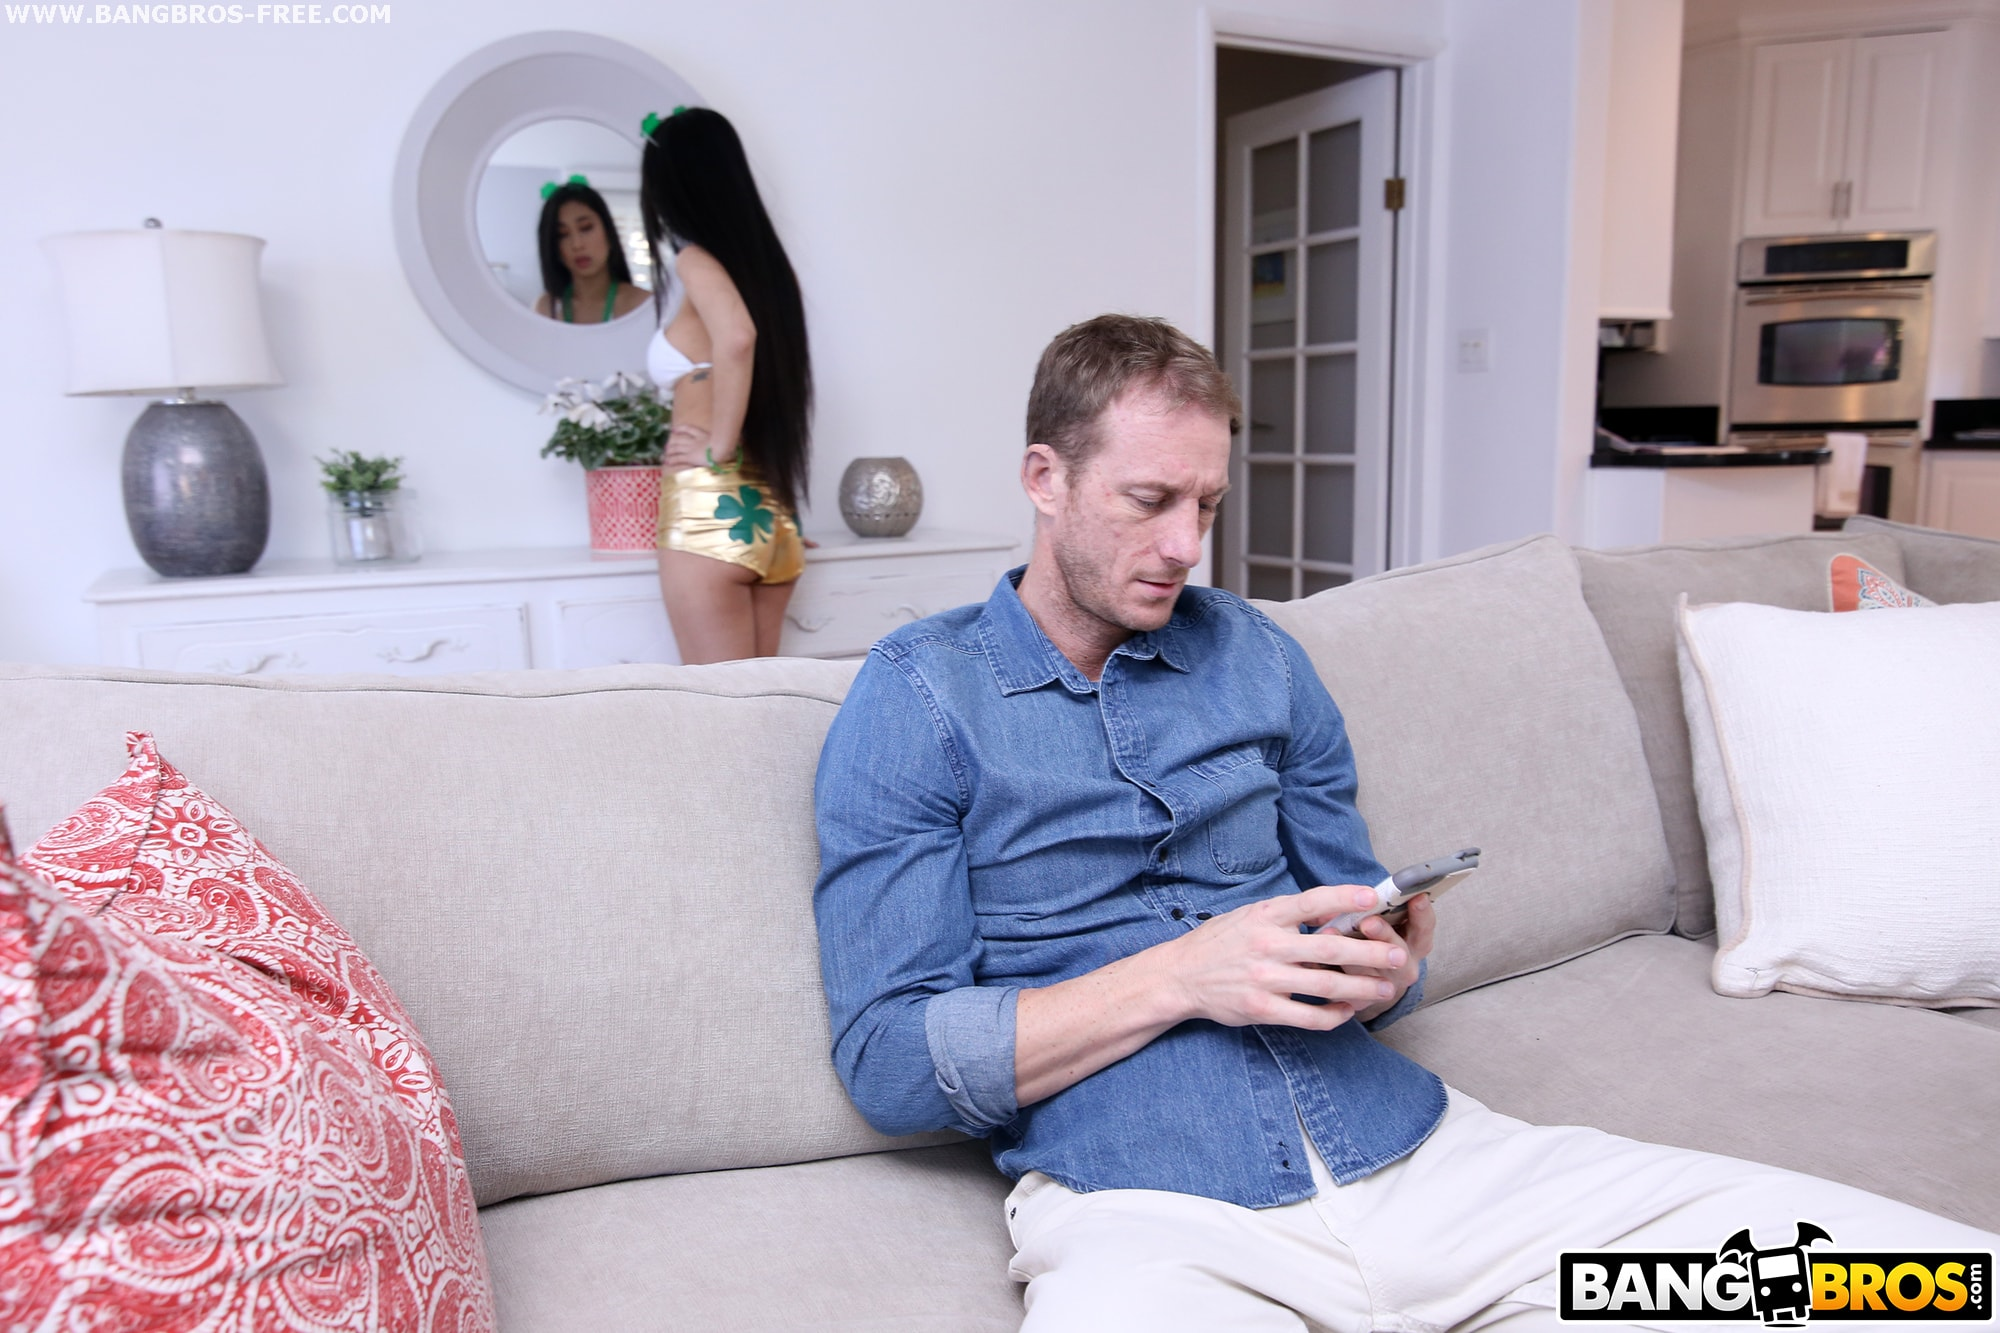 Bangbros 'Fucking To Go To A St. Patrick's Day Party' starring Jade Kush (photo 1)